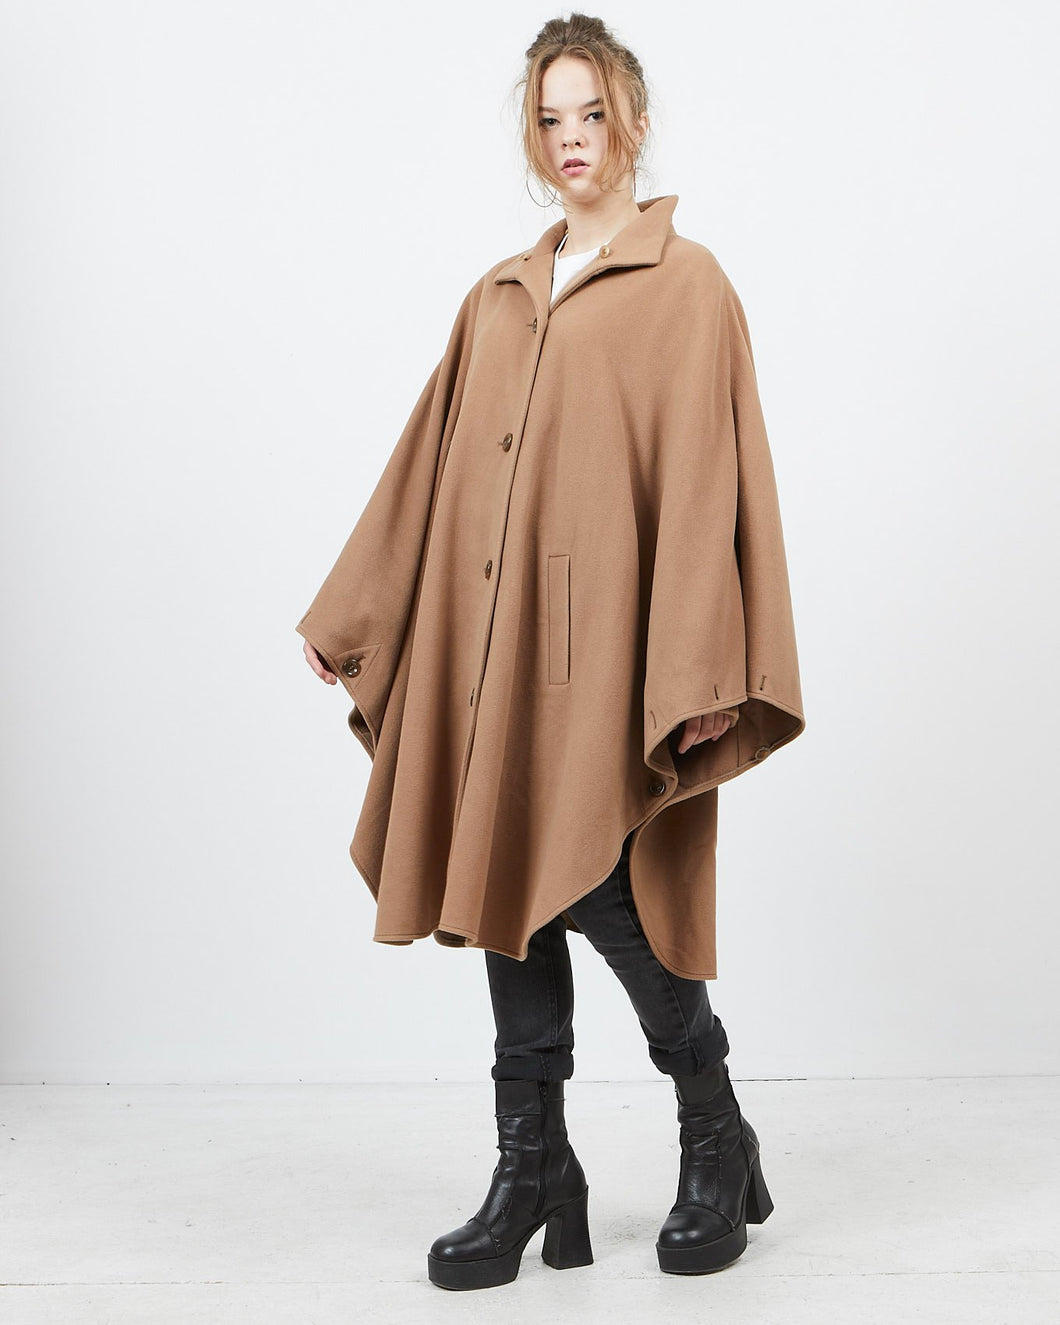 Vintage Women's Autumn Winter Brown KOEHIER-KRENZER Cape Poncho Coat/ Size 38